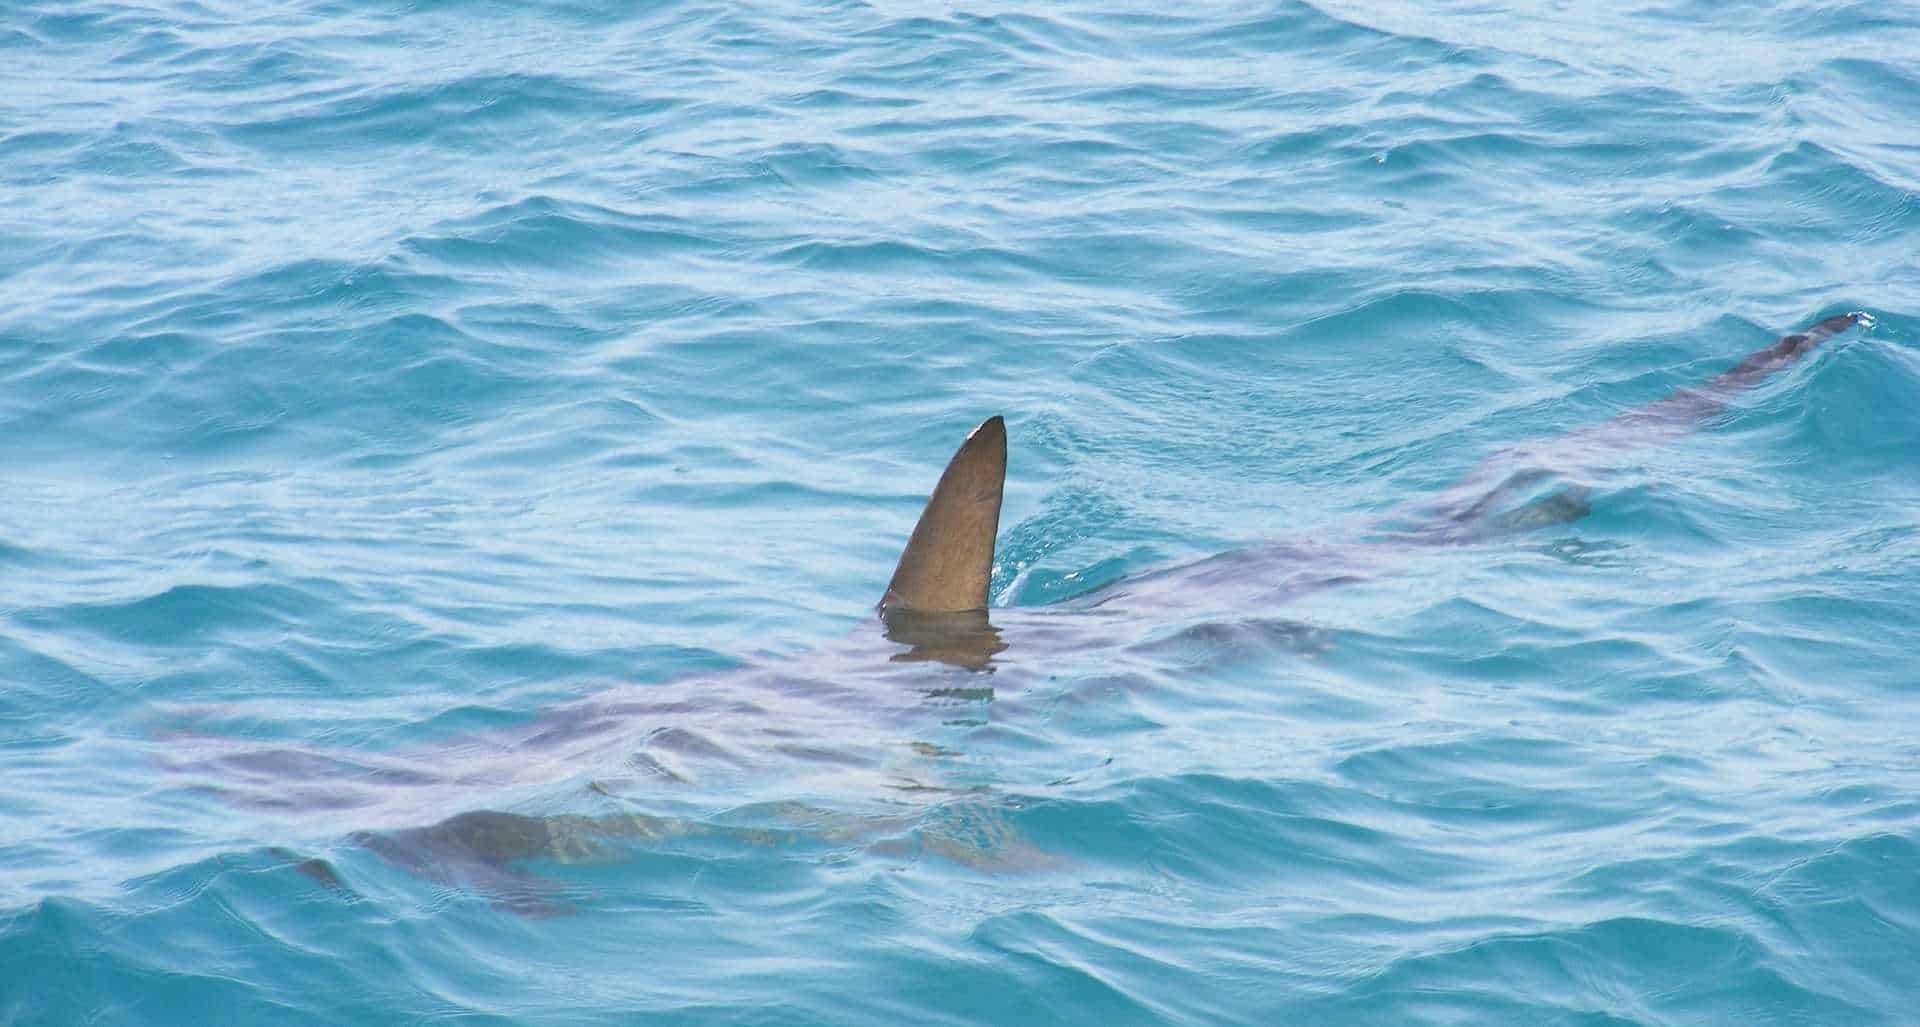 A shark in the water with his fin peeking out of the water.